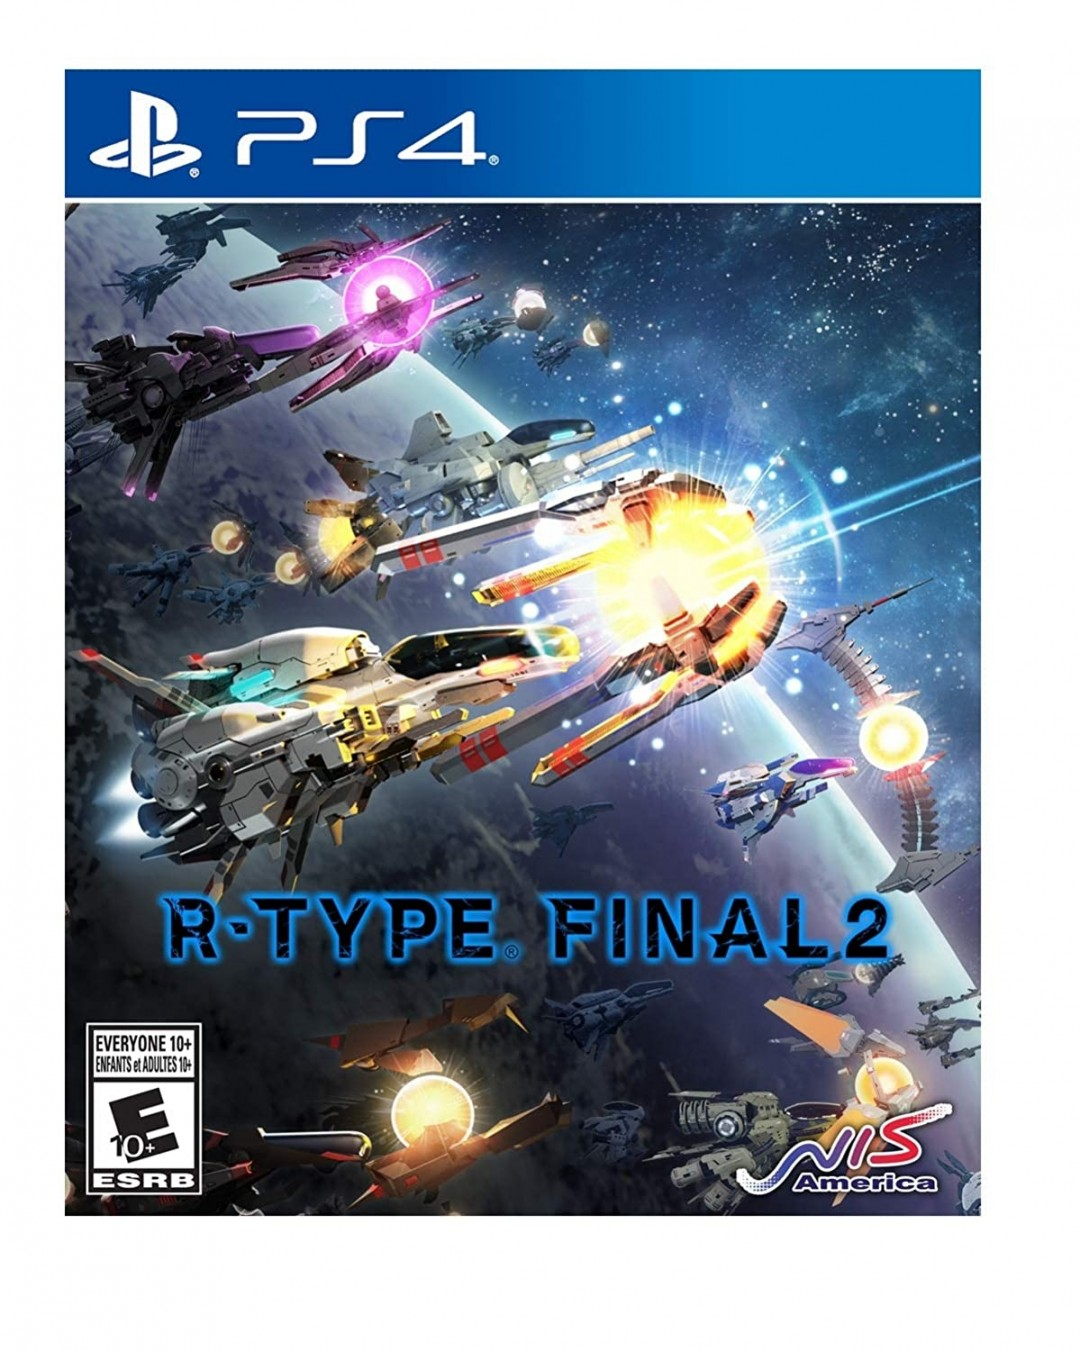 R-Type 2 Final Inaugural Edition